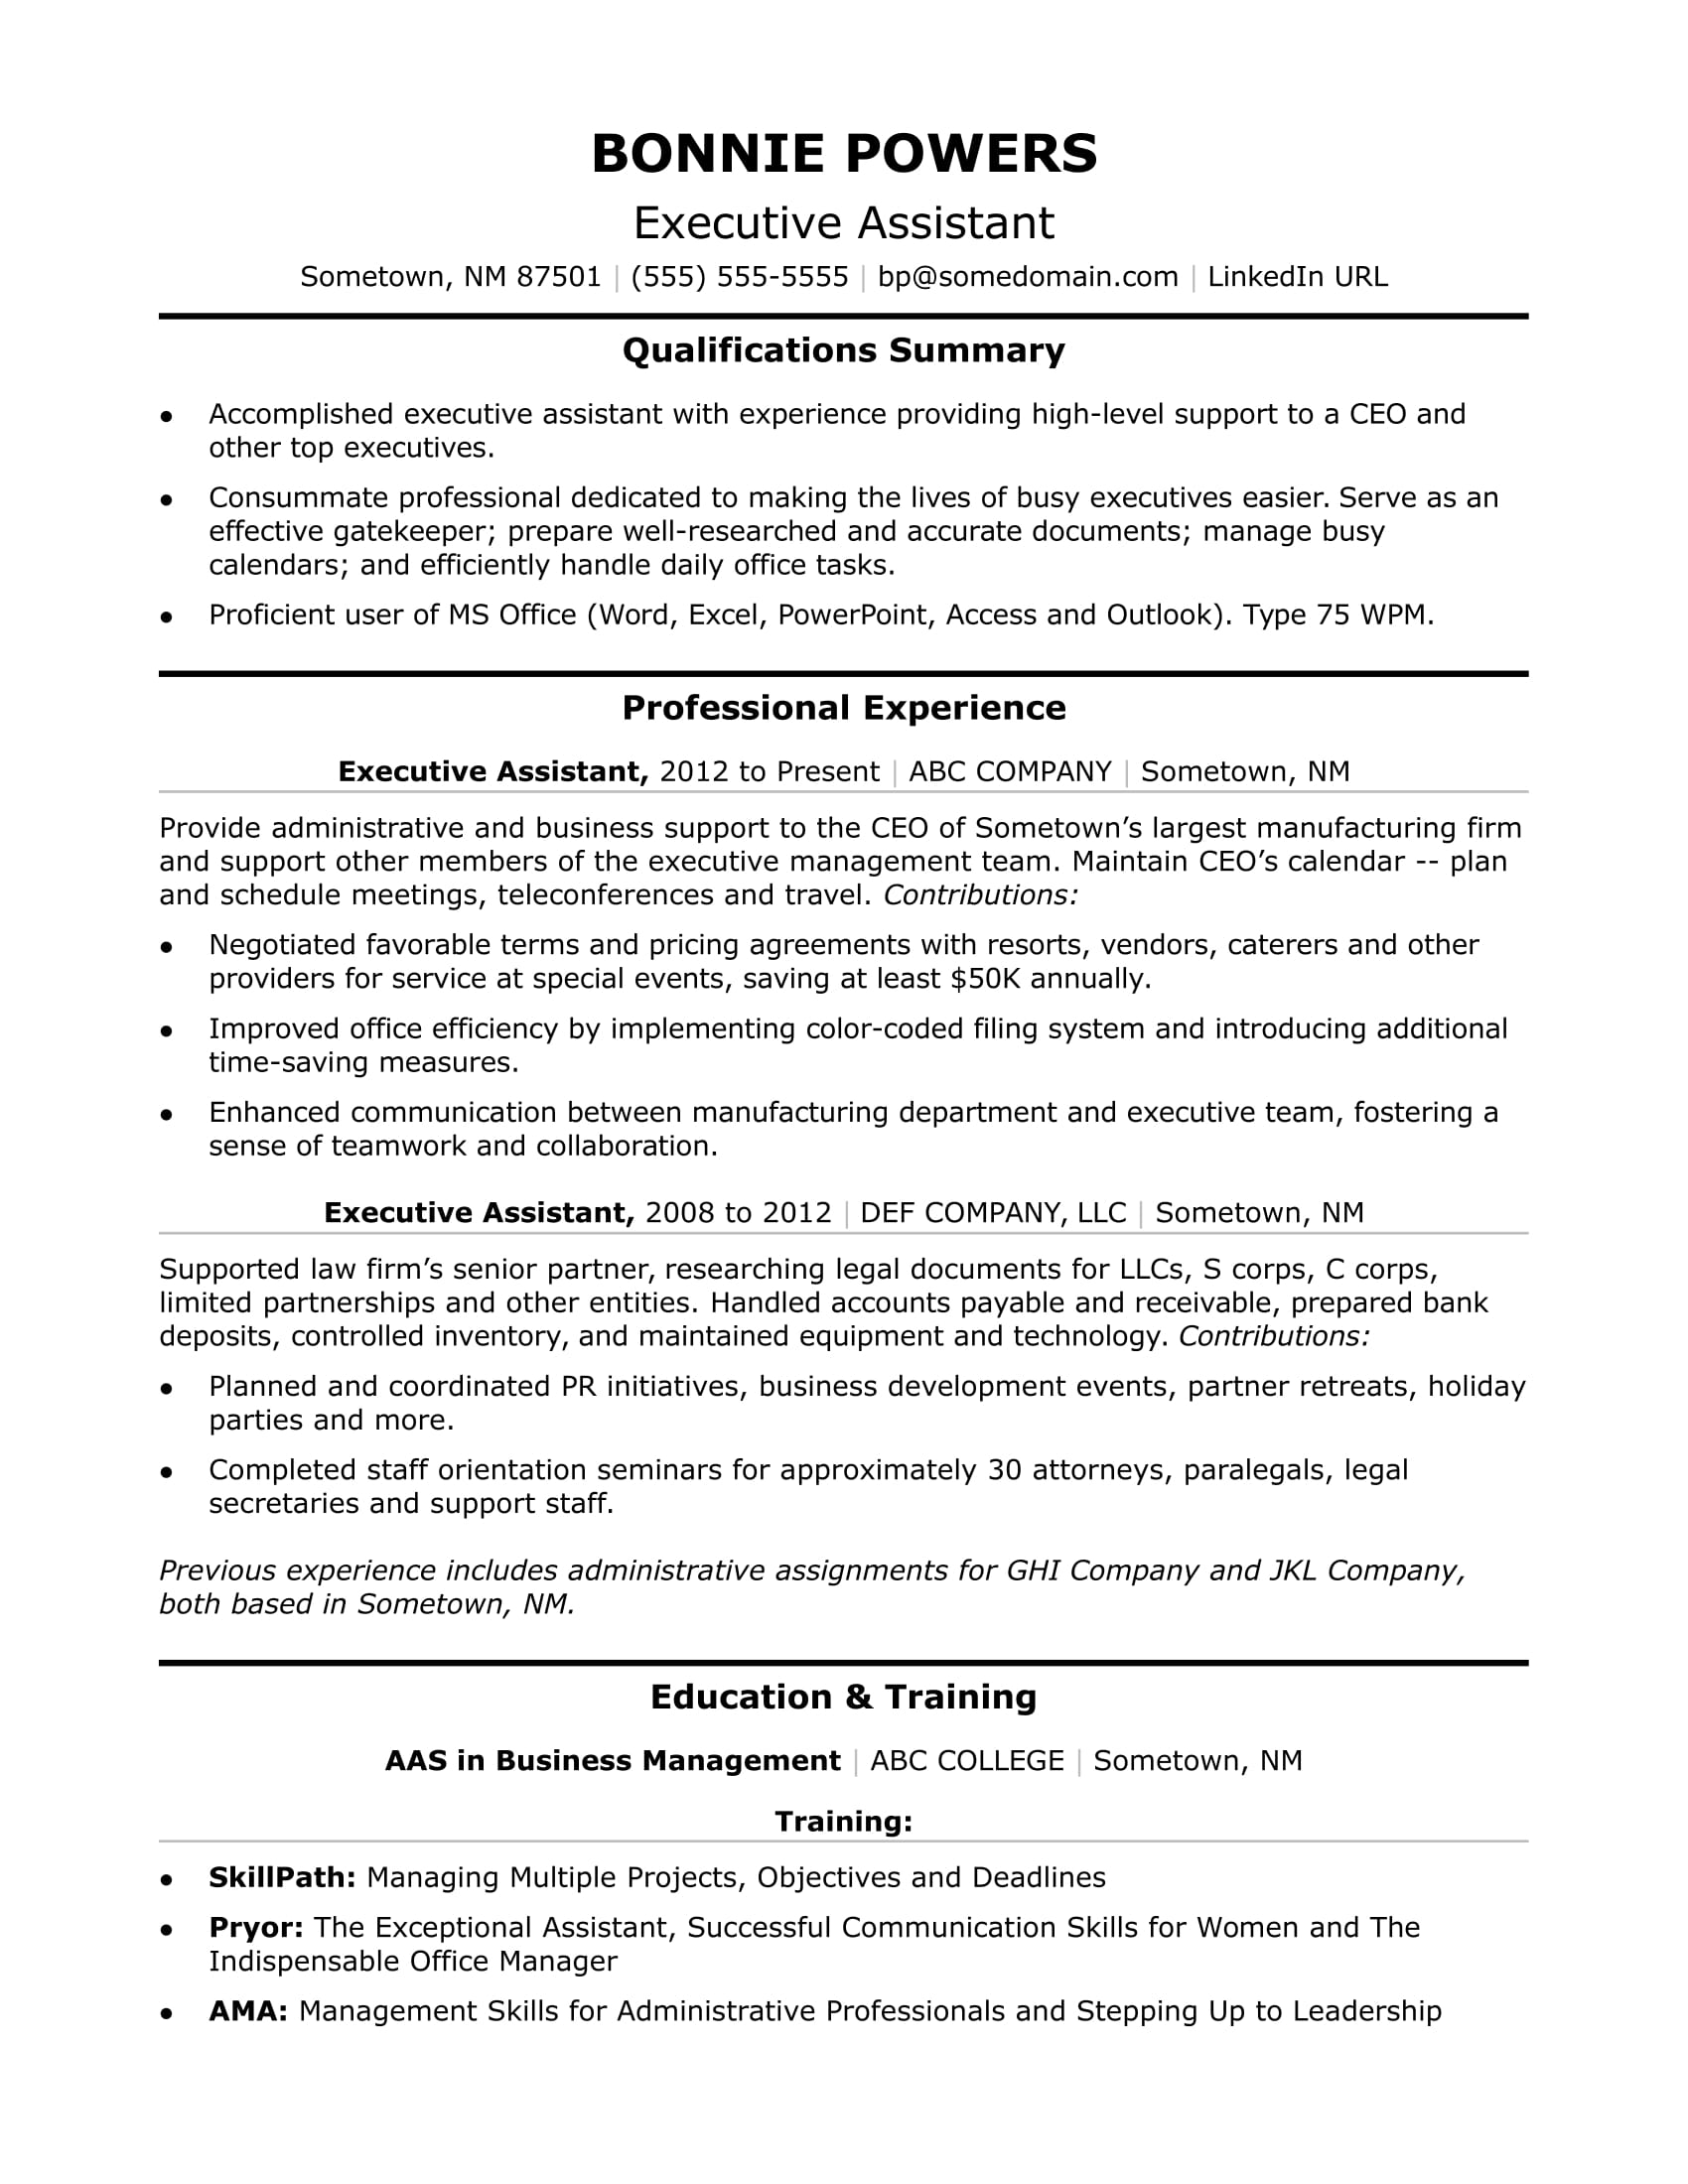 executive administrative assistant resume sample monster keywords for and cover letter Resume Keywords For Executive Assistant Resume